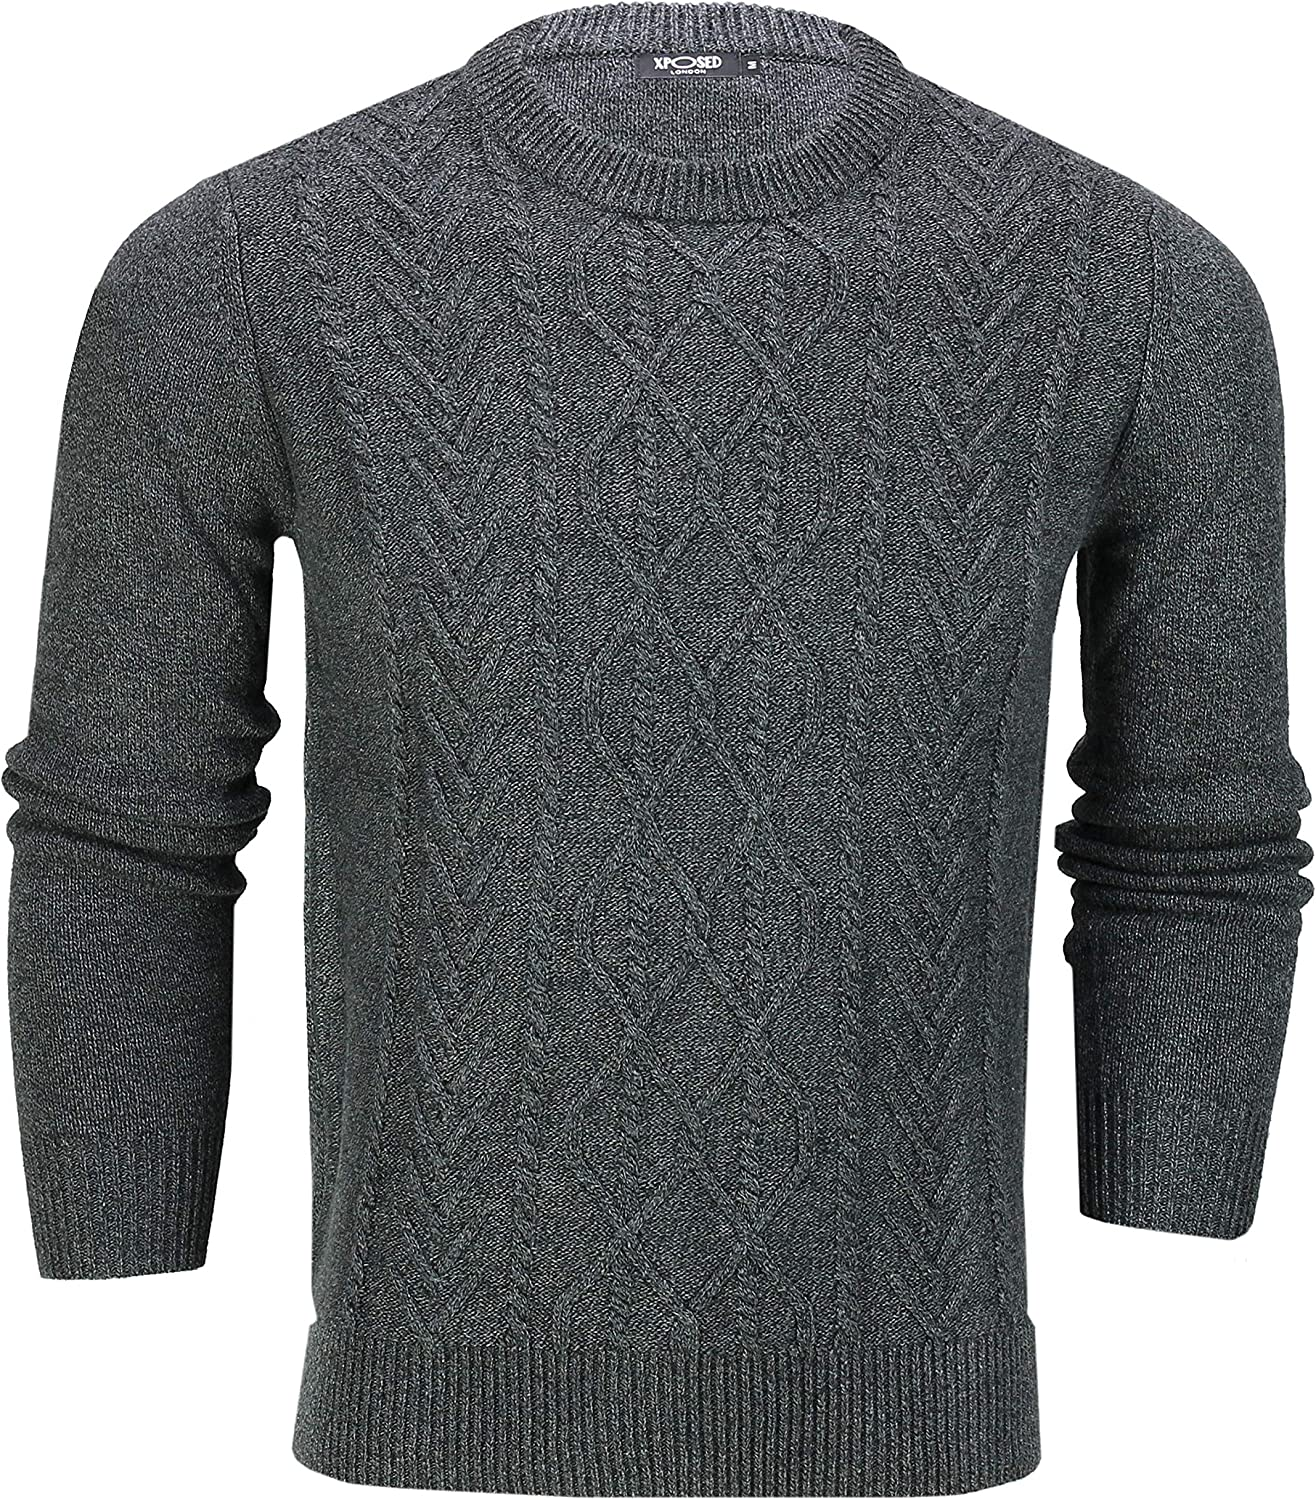 Xposed Mens Crew Neck Jumper Chunky Cotton Cable Knit Top Classic Winter Knitwear Sweater